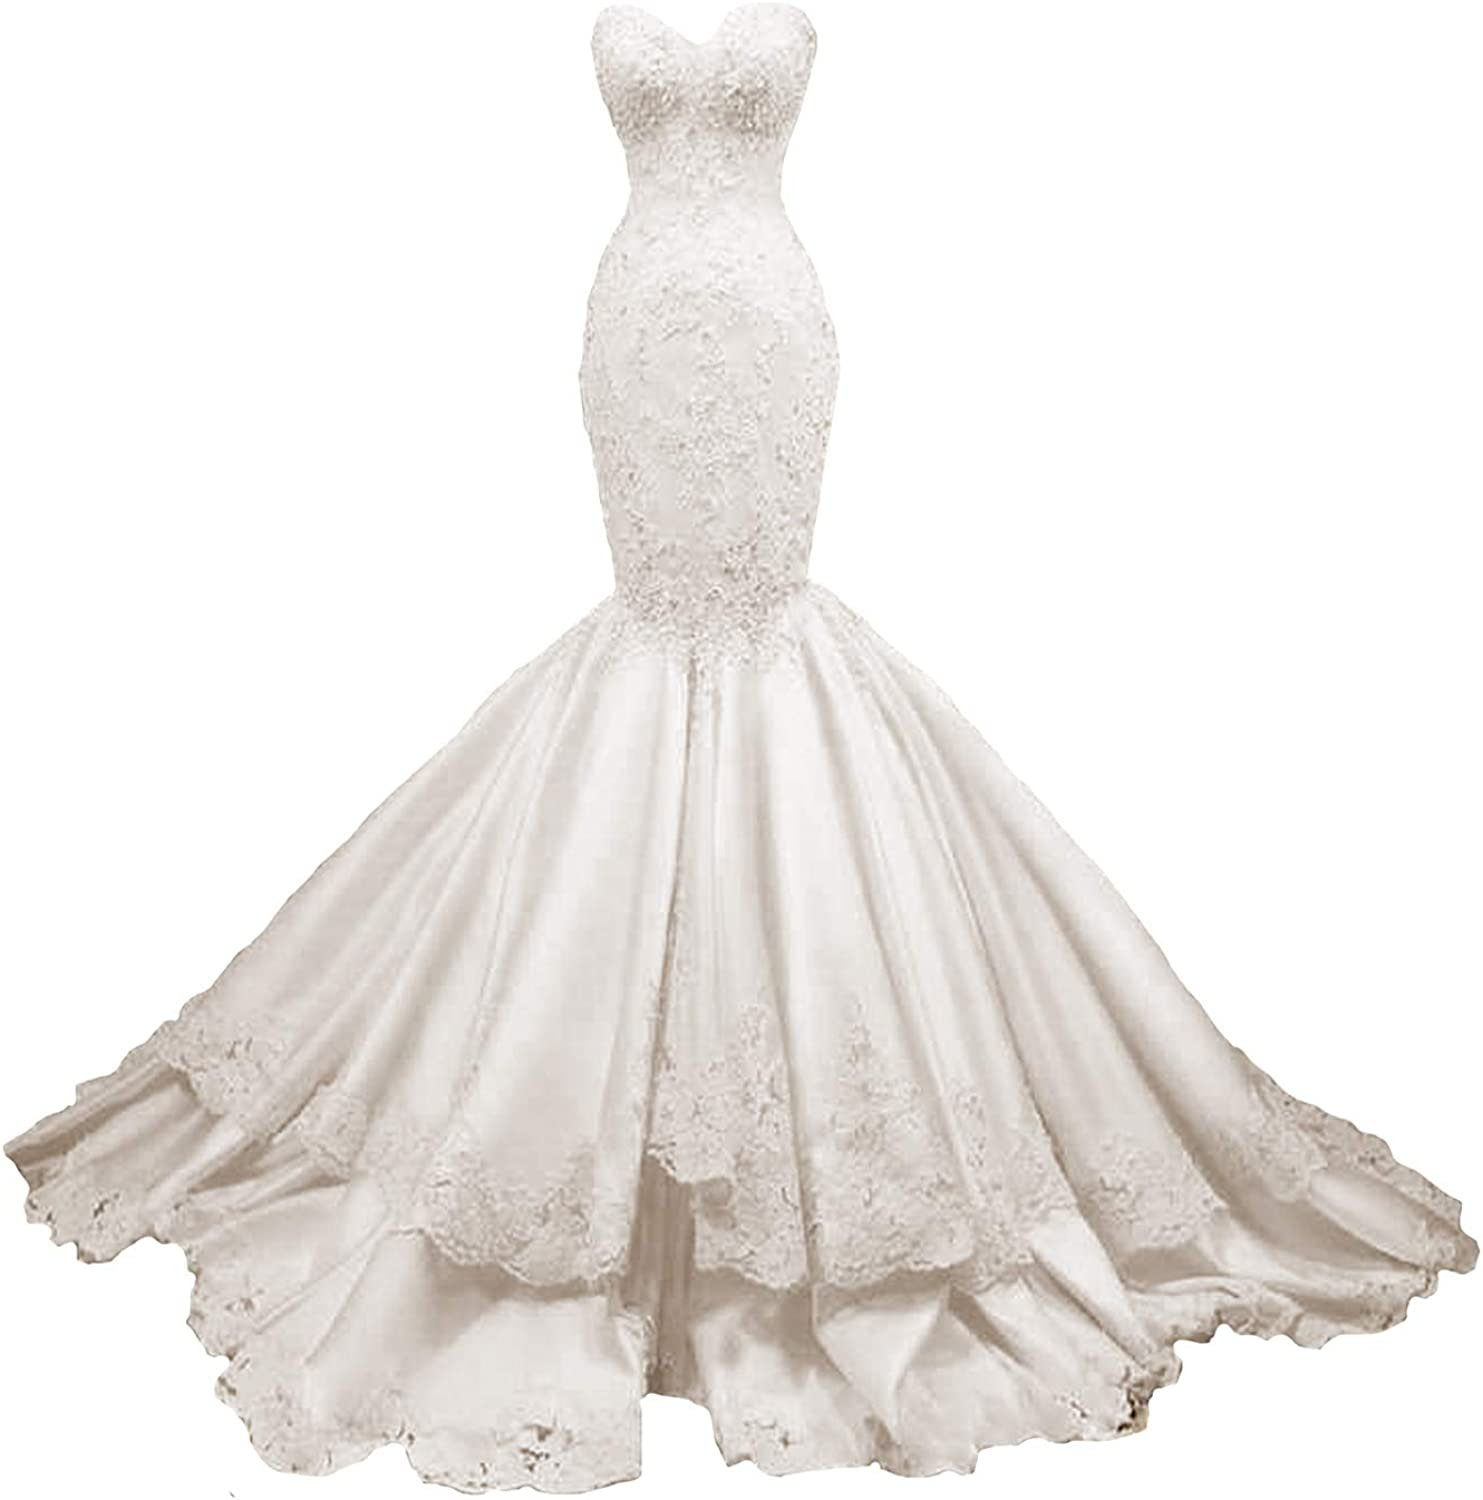 Yuxin Sweetheart Strapless Mermaid Lace Wedding Dress Beading Satin Bridal Gowns At Amazon Women S Clothing Store